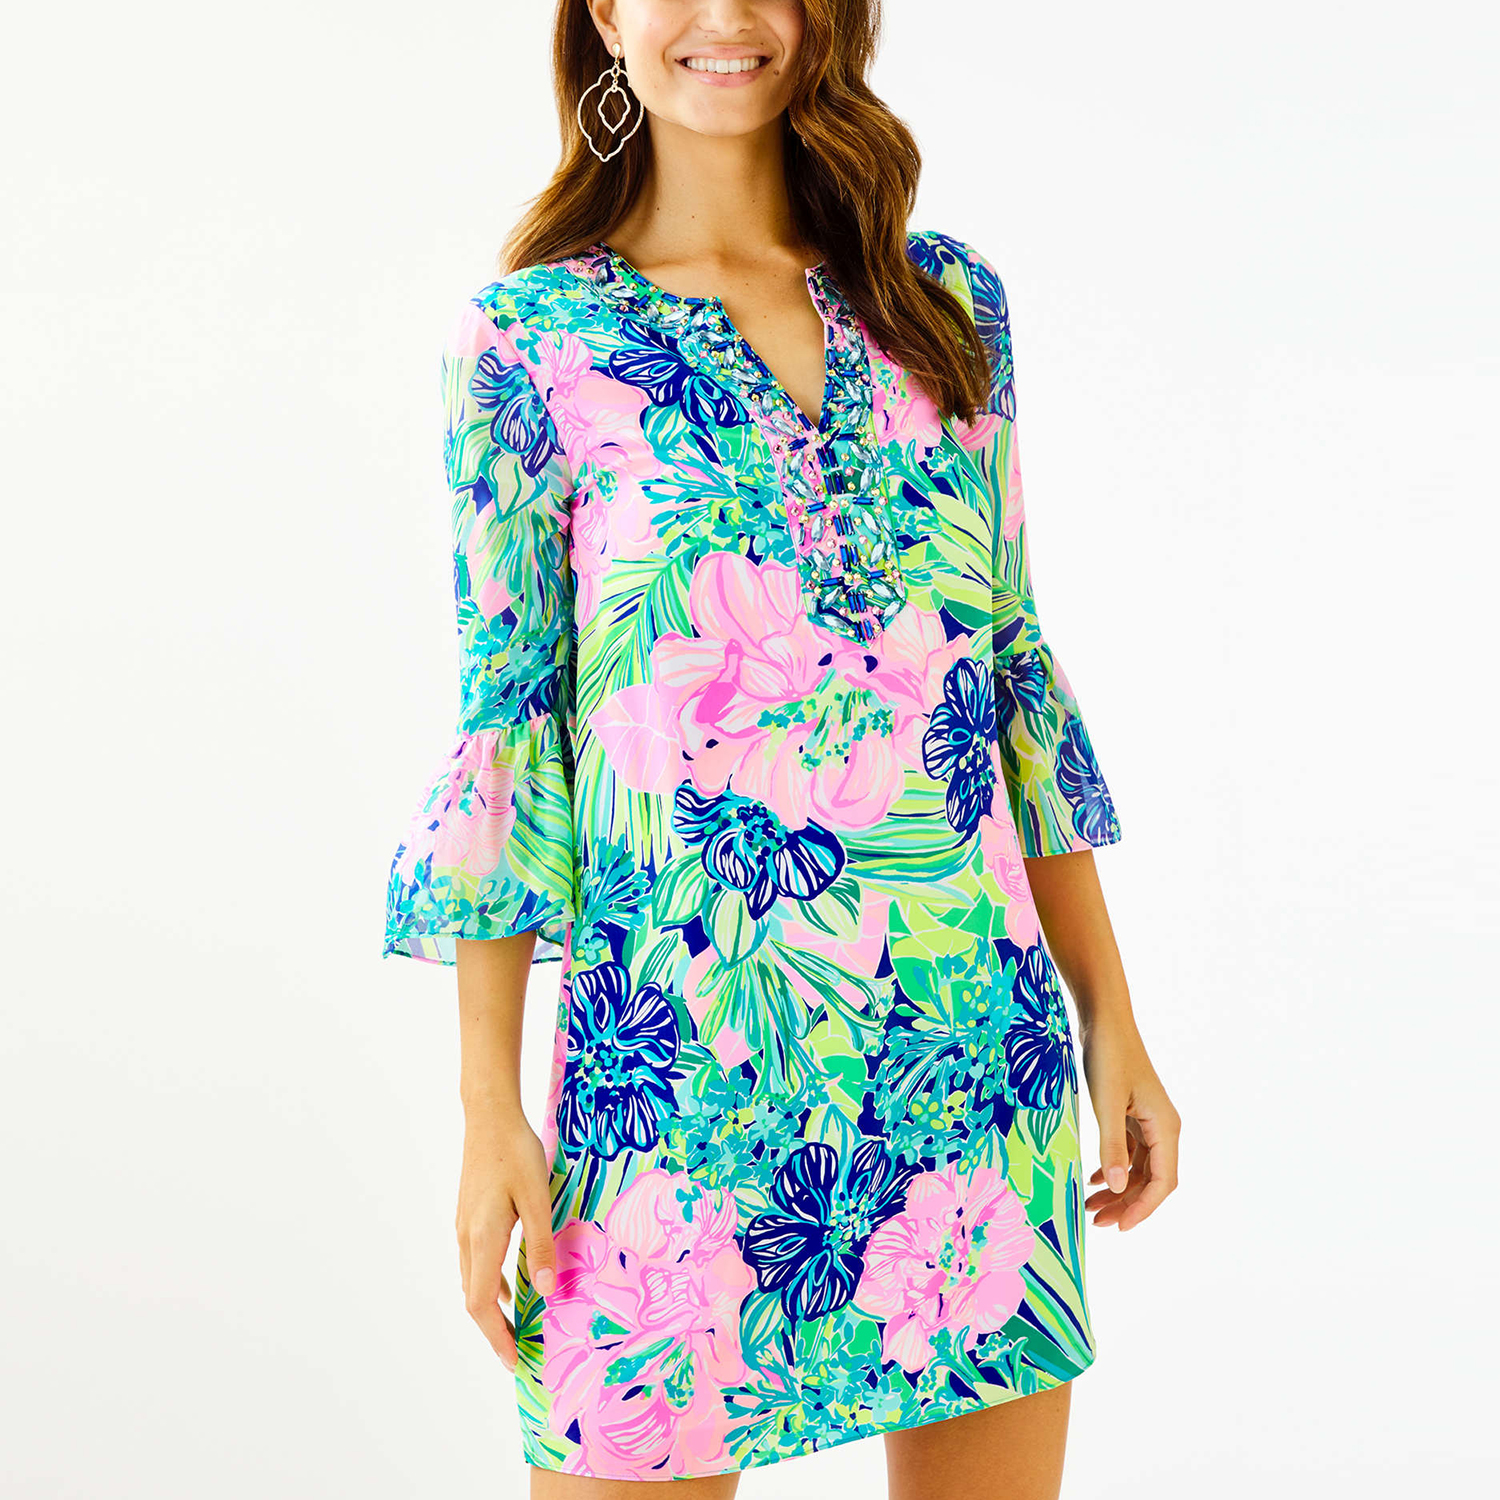 Elenora Silk Dress in Multi Island Escape